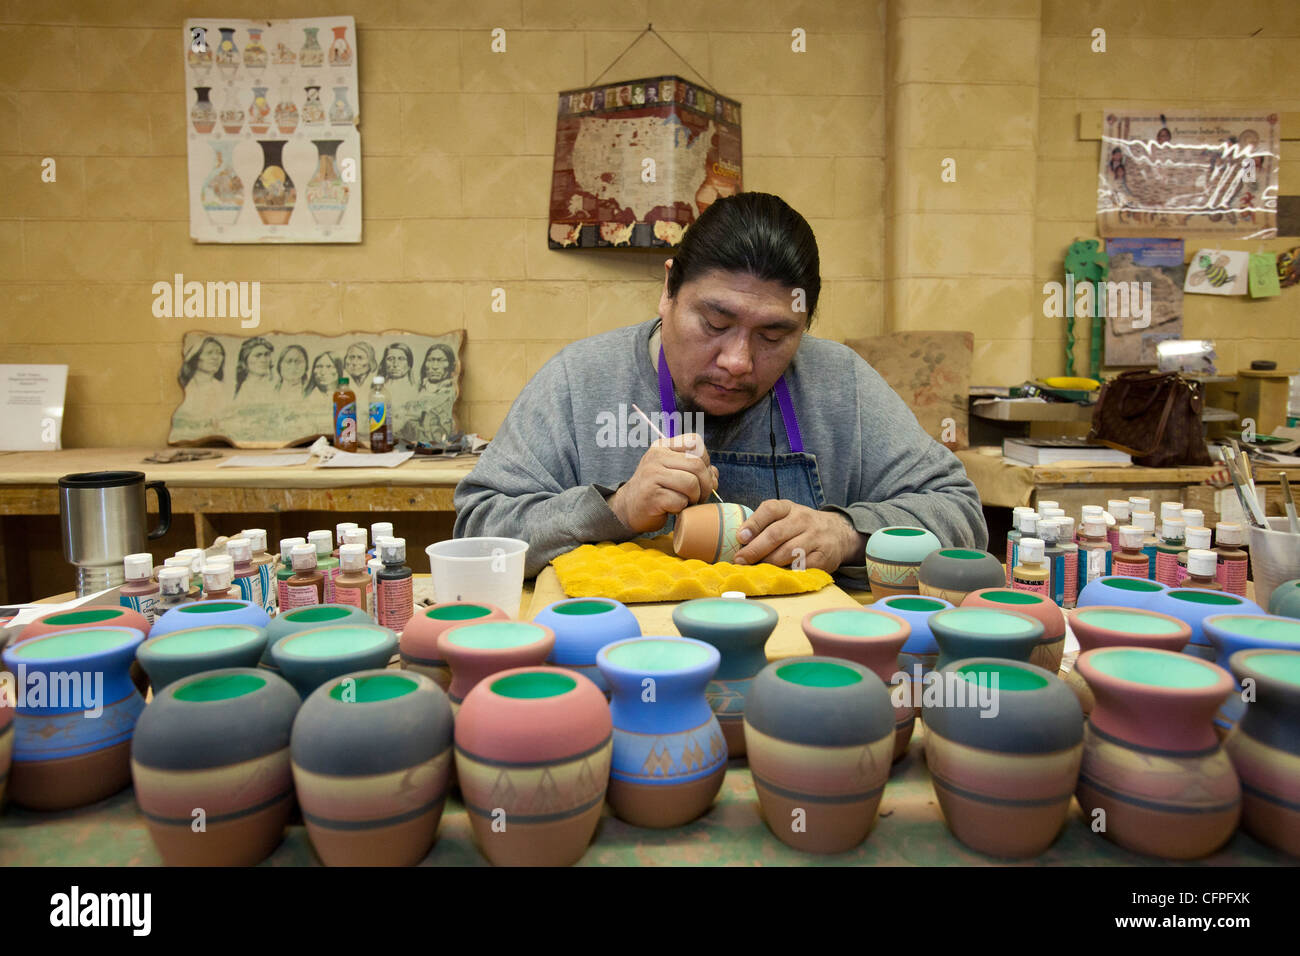 Rapid City, South Dakota - Dorian New Holy, a member of the Oglala Sioux, creates pottery at Sioux Pottery. - Stock Image